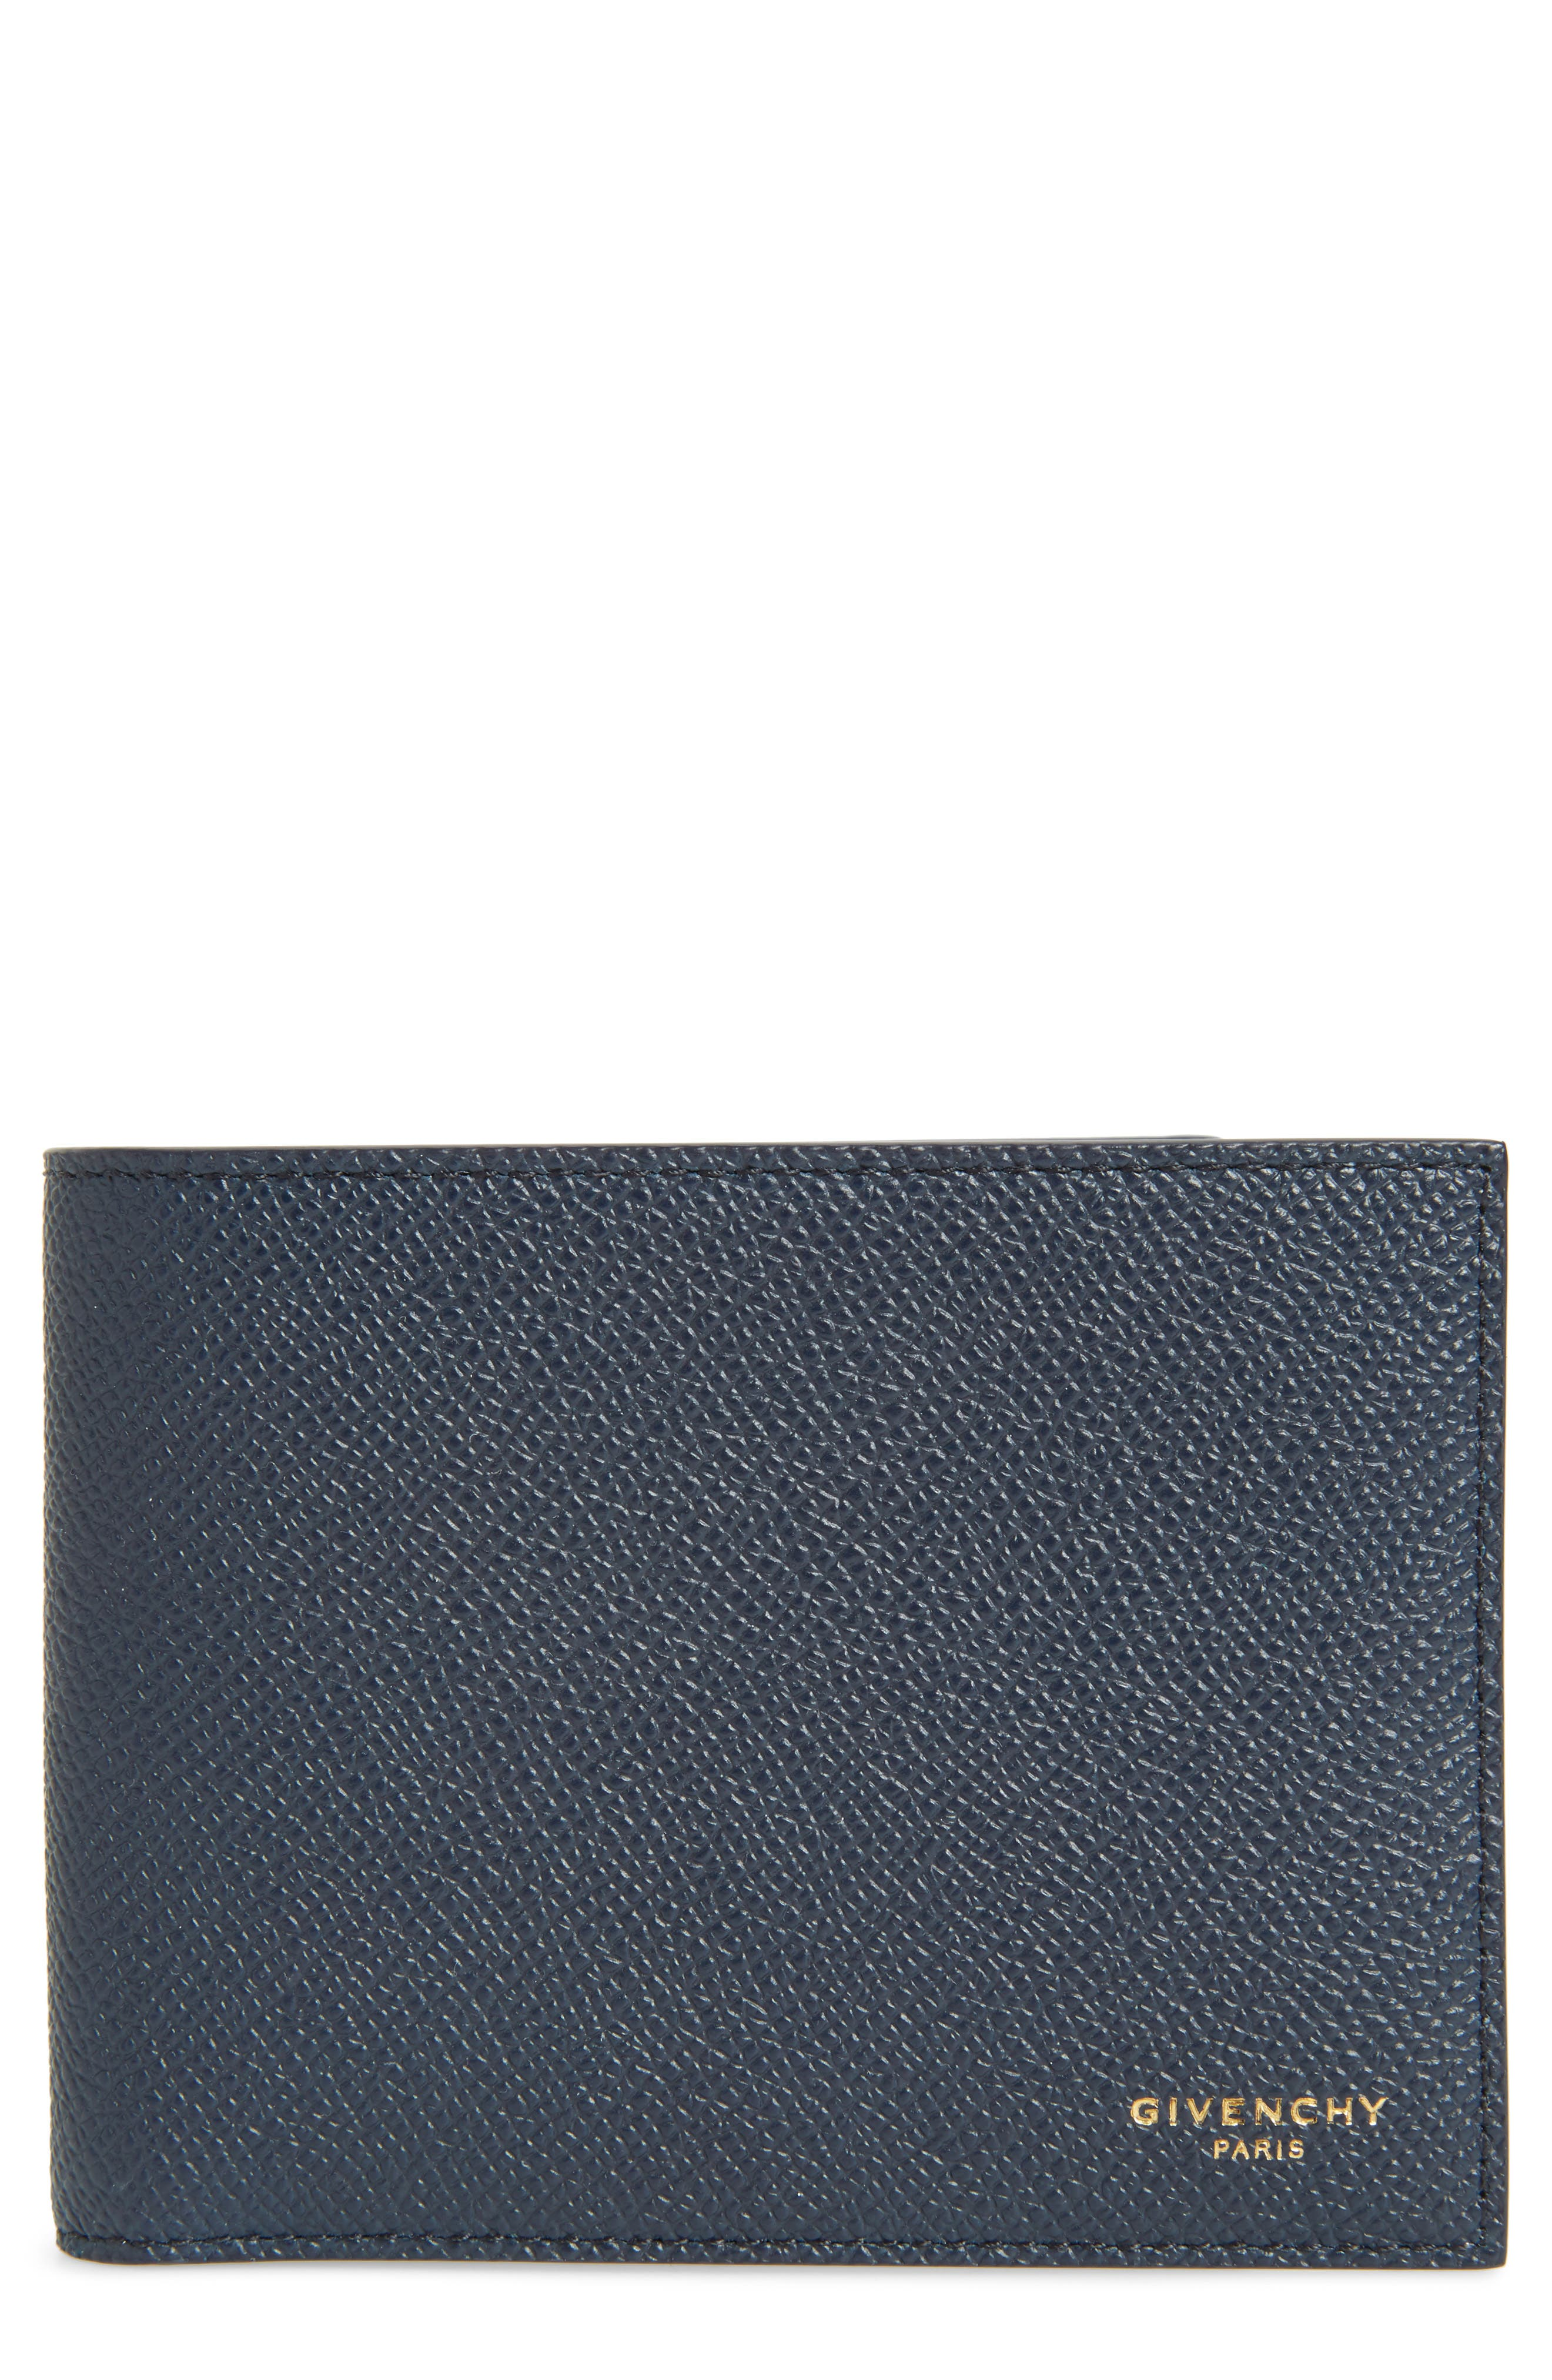 Main Image - Givenchy Eros Textured Leather Wallet